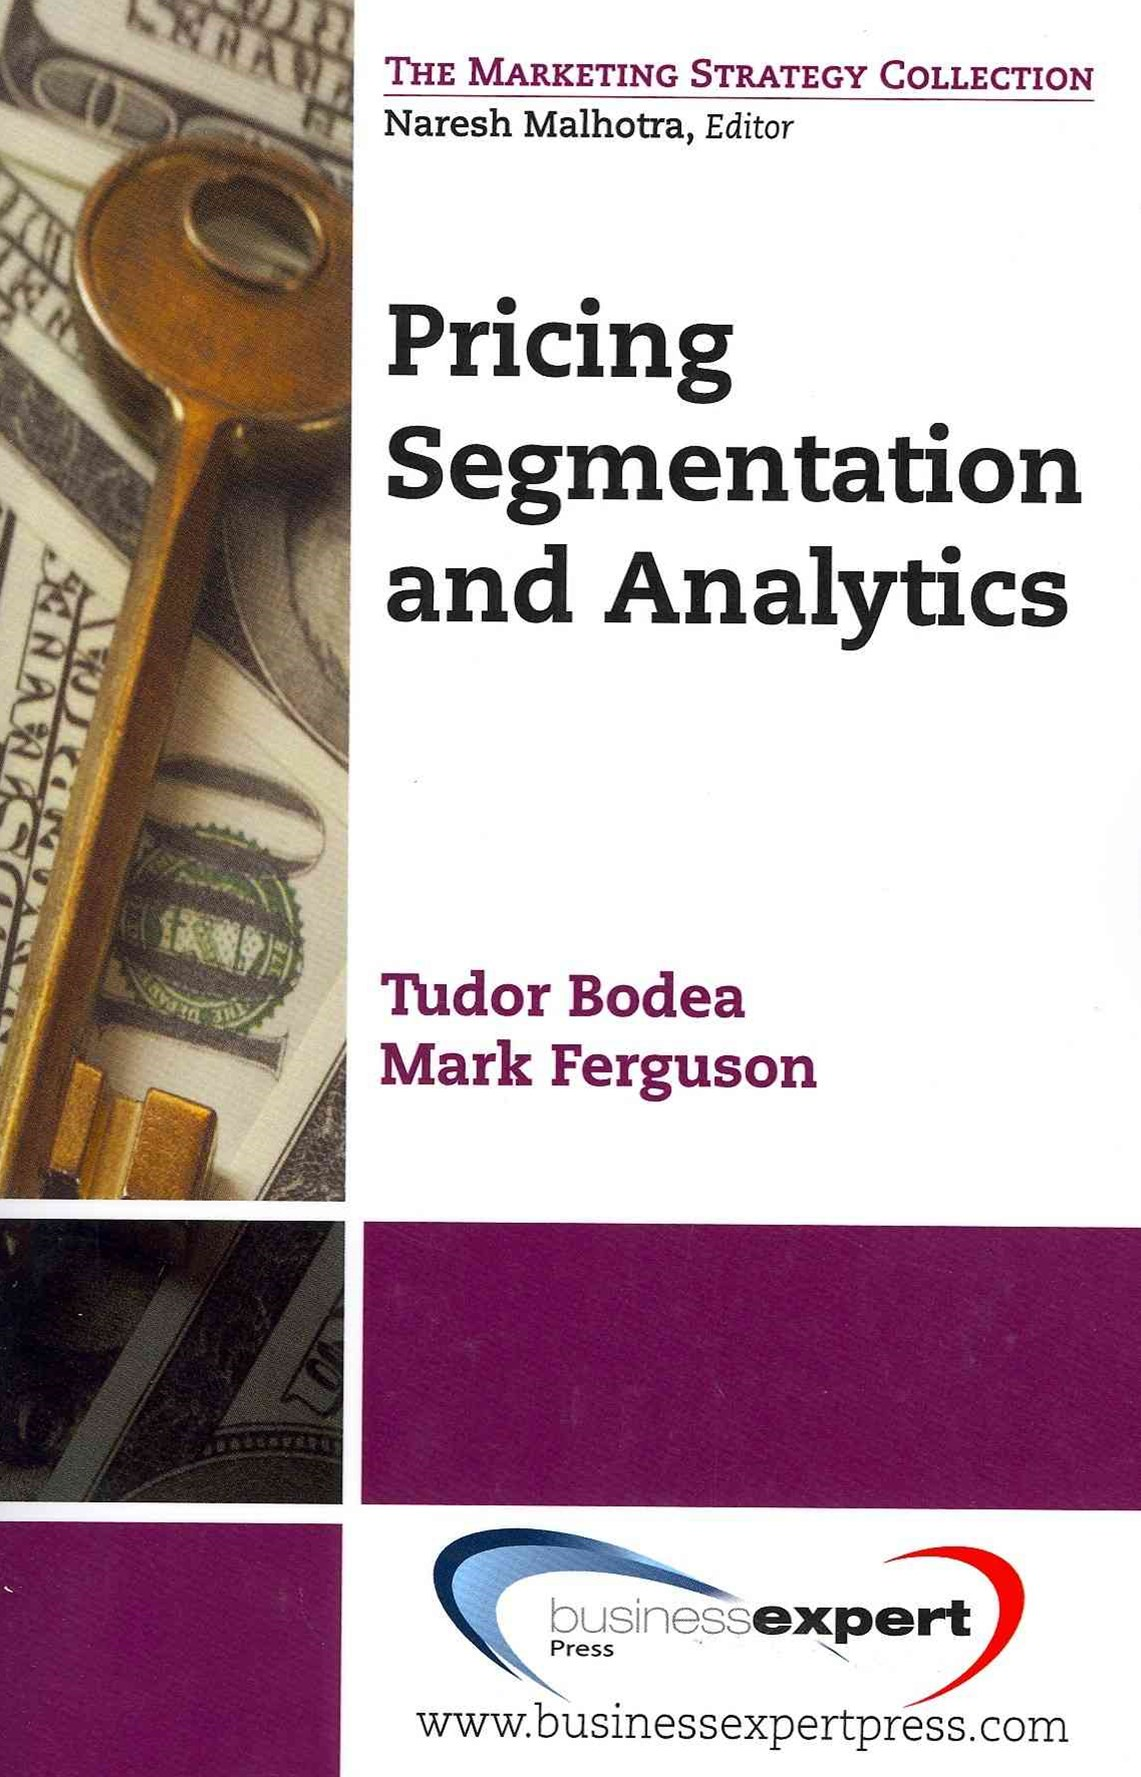 Pricing Segmentation and Analytics